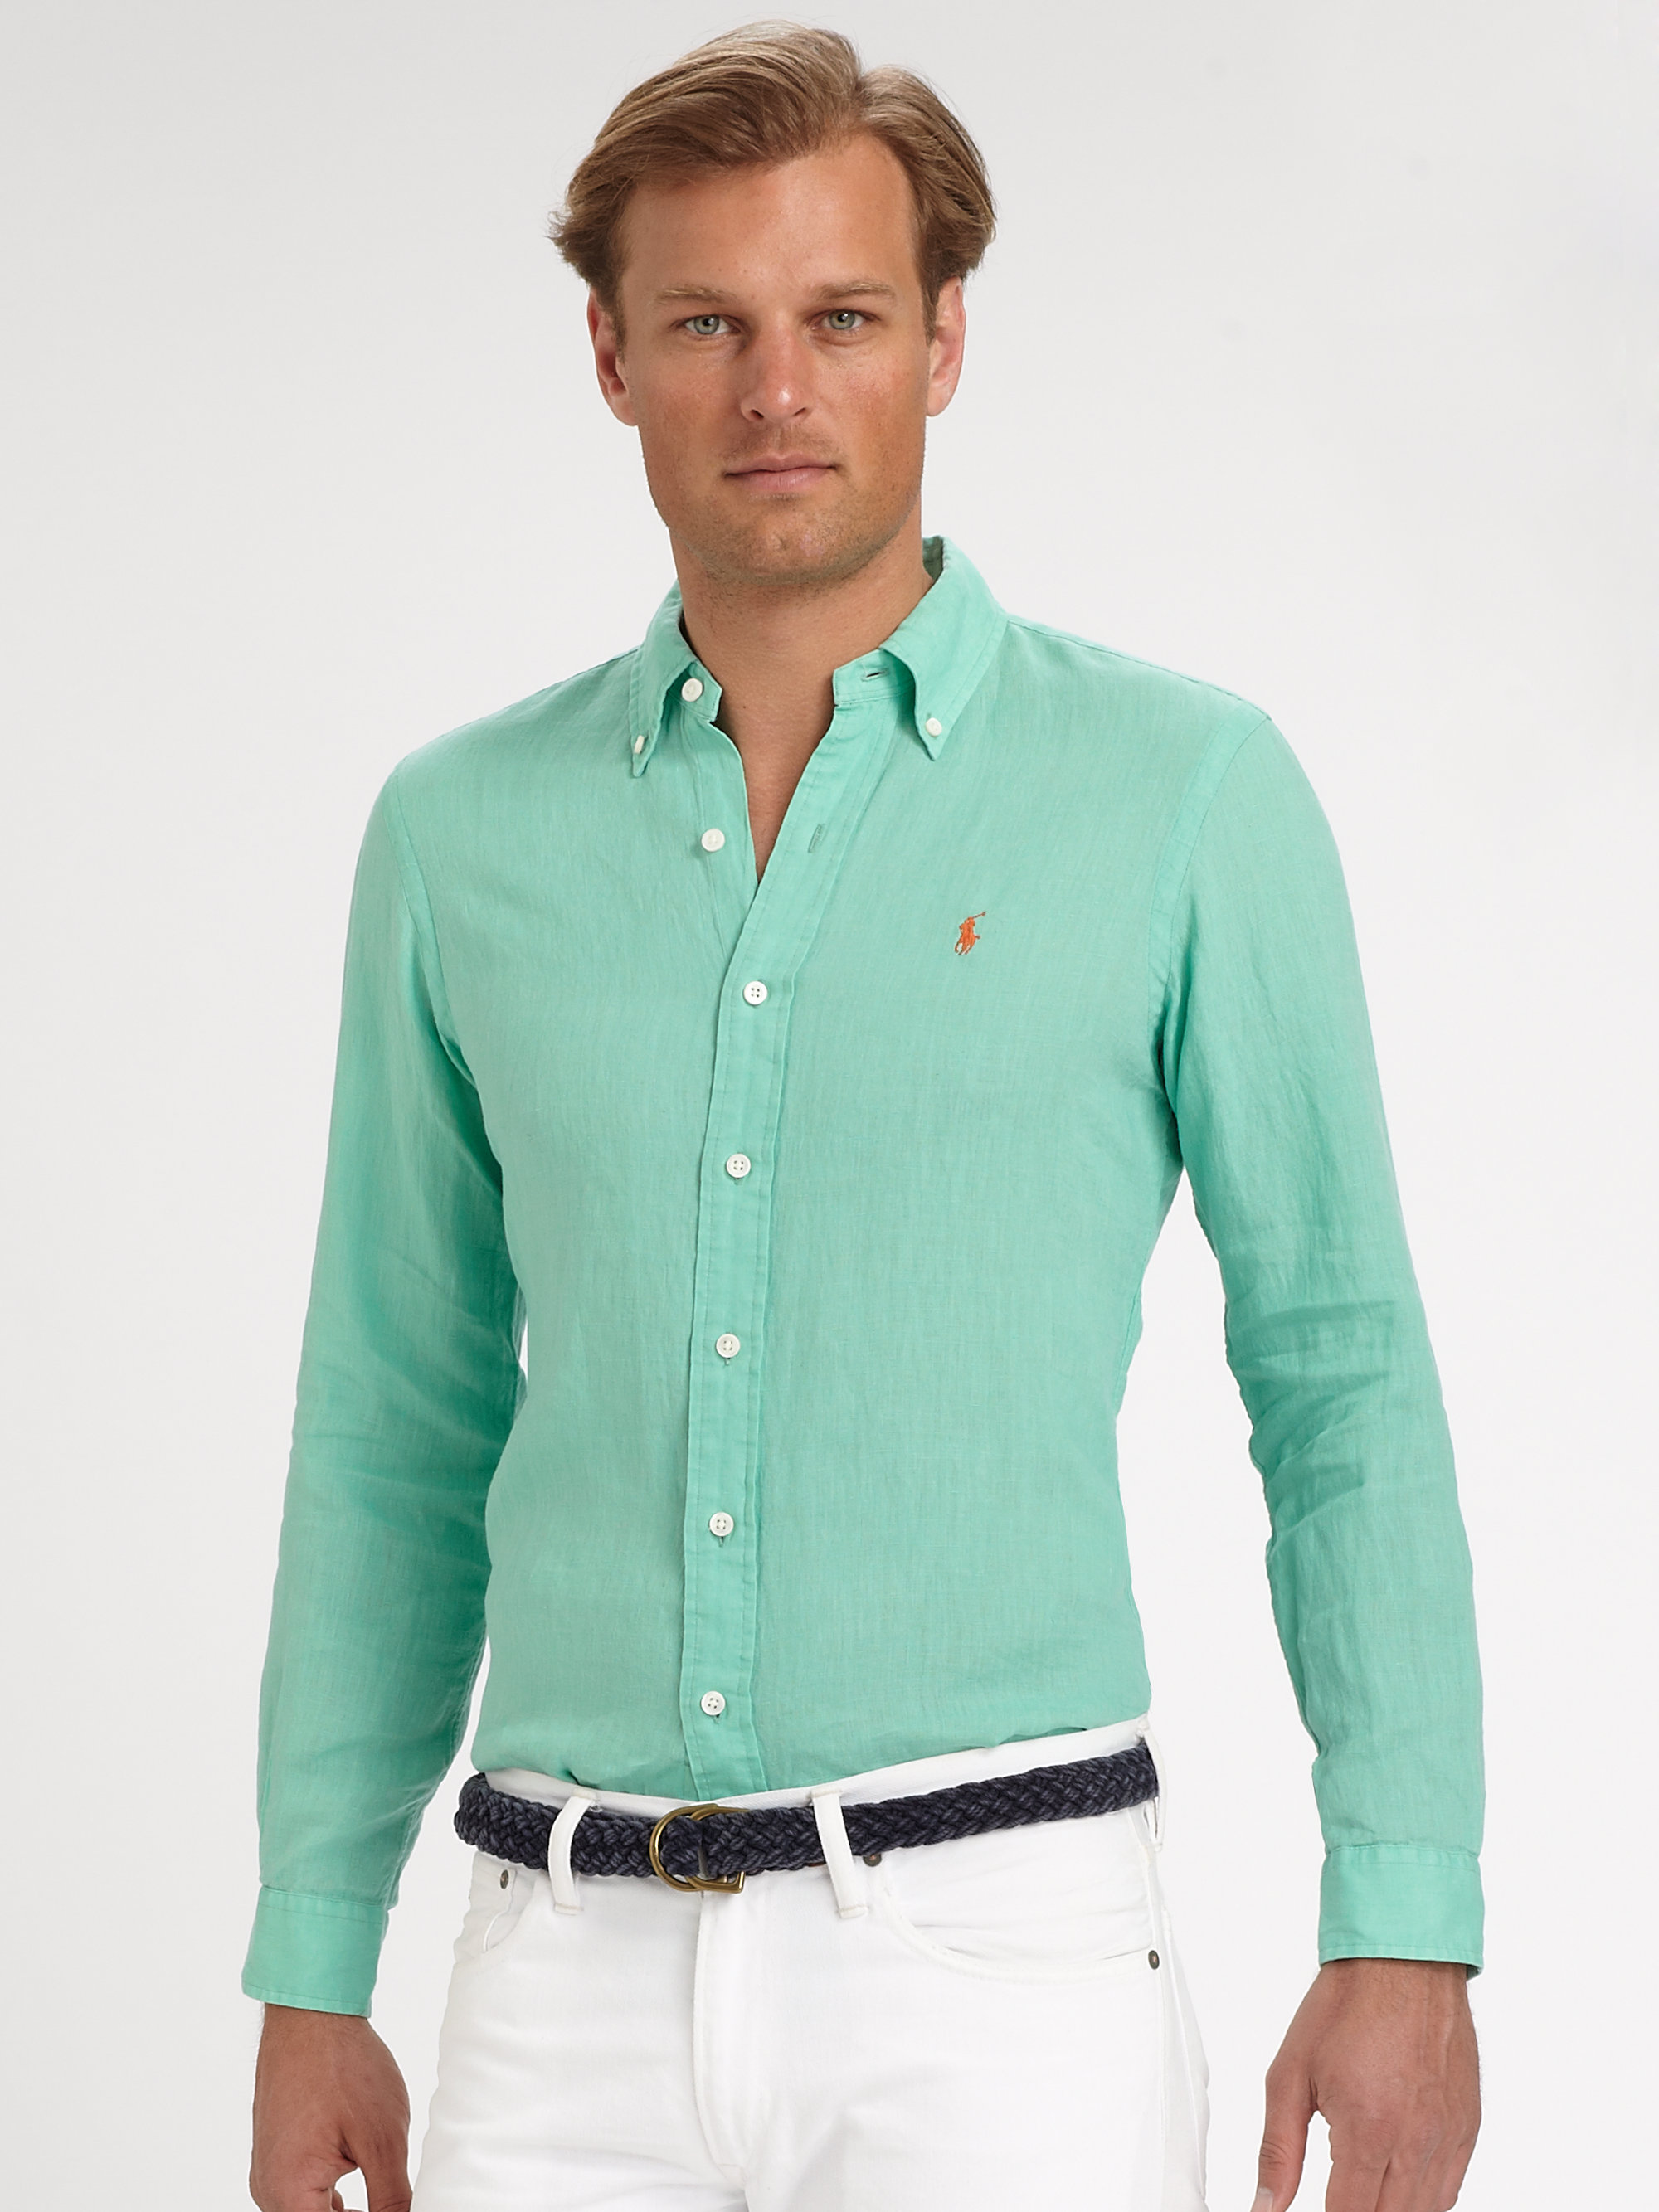 polo ralph lauren custom fit linen sport shirt in green